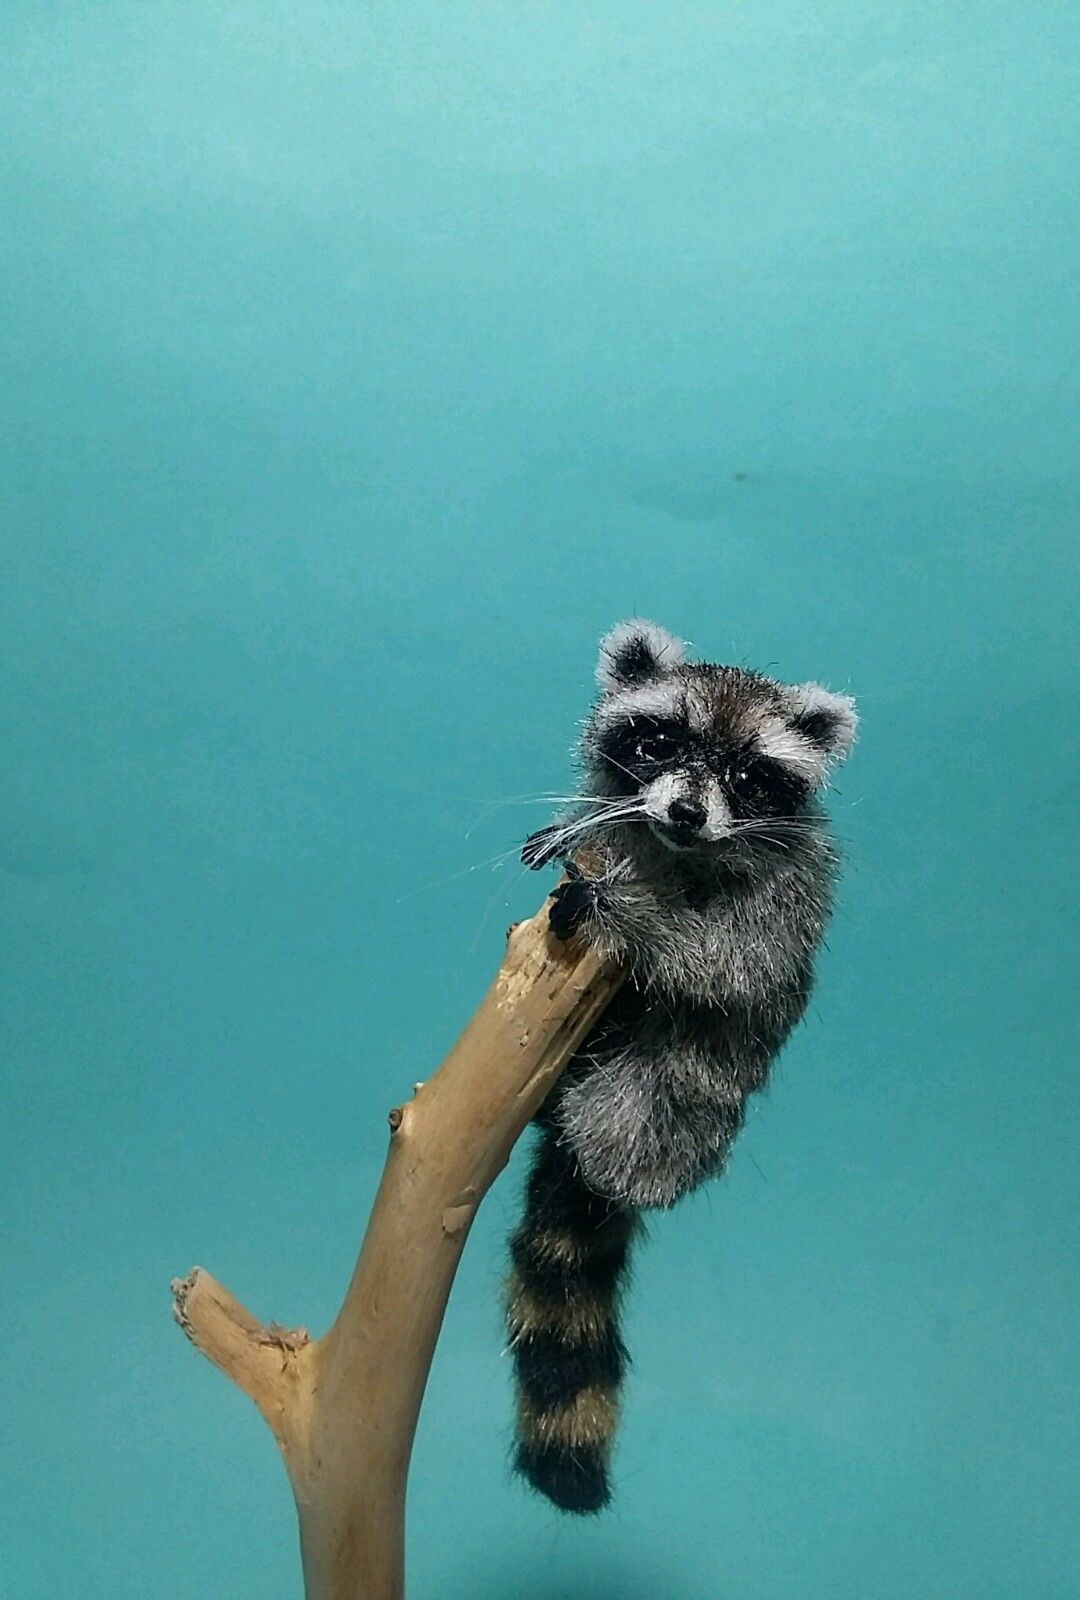 Ooak Realistic Poseable Raccoon In 1 12th Scale Dollhouse Handmade By Ewelina In Dolls Bears Dolls Miniatures Hous With Images Miniature Animals Doll House Scale Art